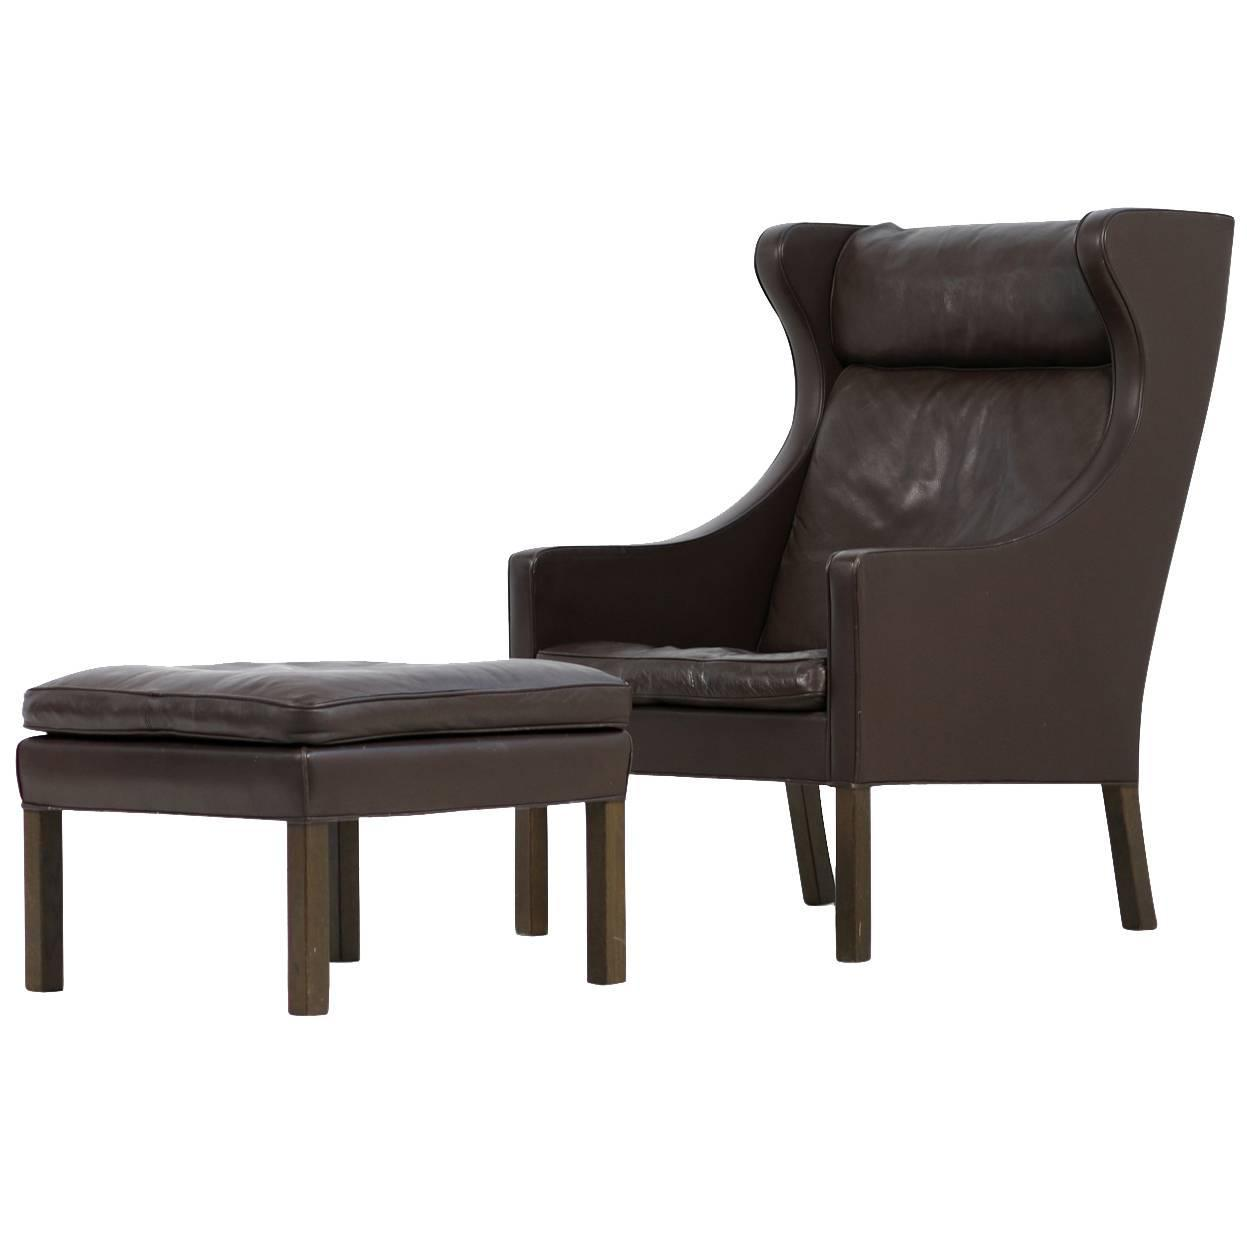 Brown 1960s Borge Mogensen Leather Wingback Lounge Chair And Ottoman 2202  And 2204 At 1stdibs